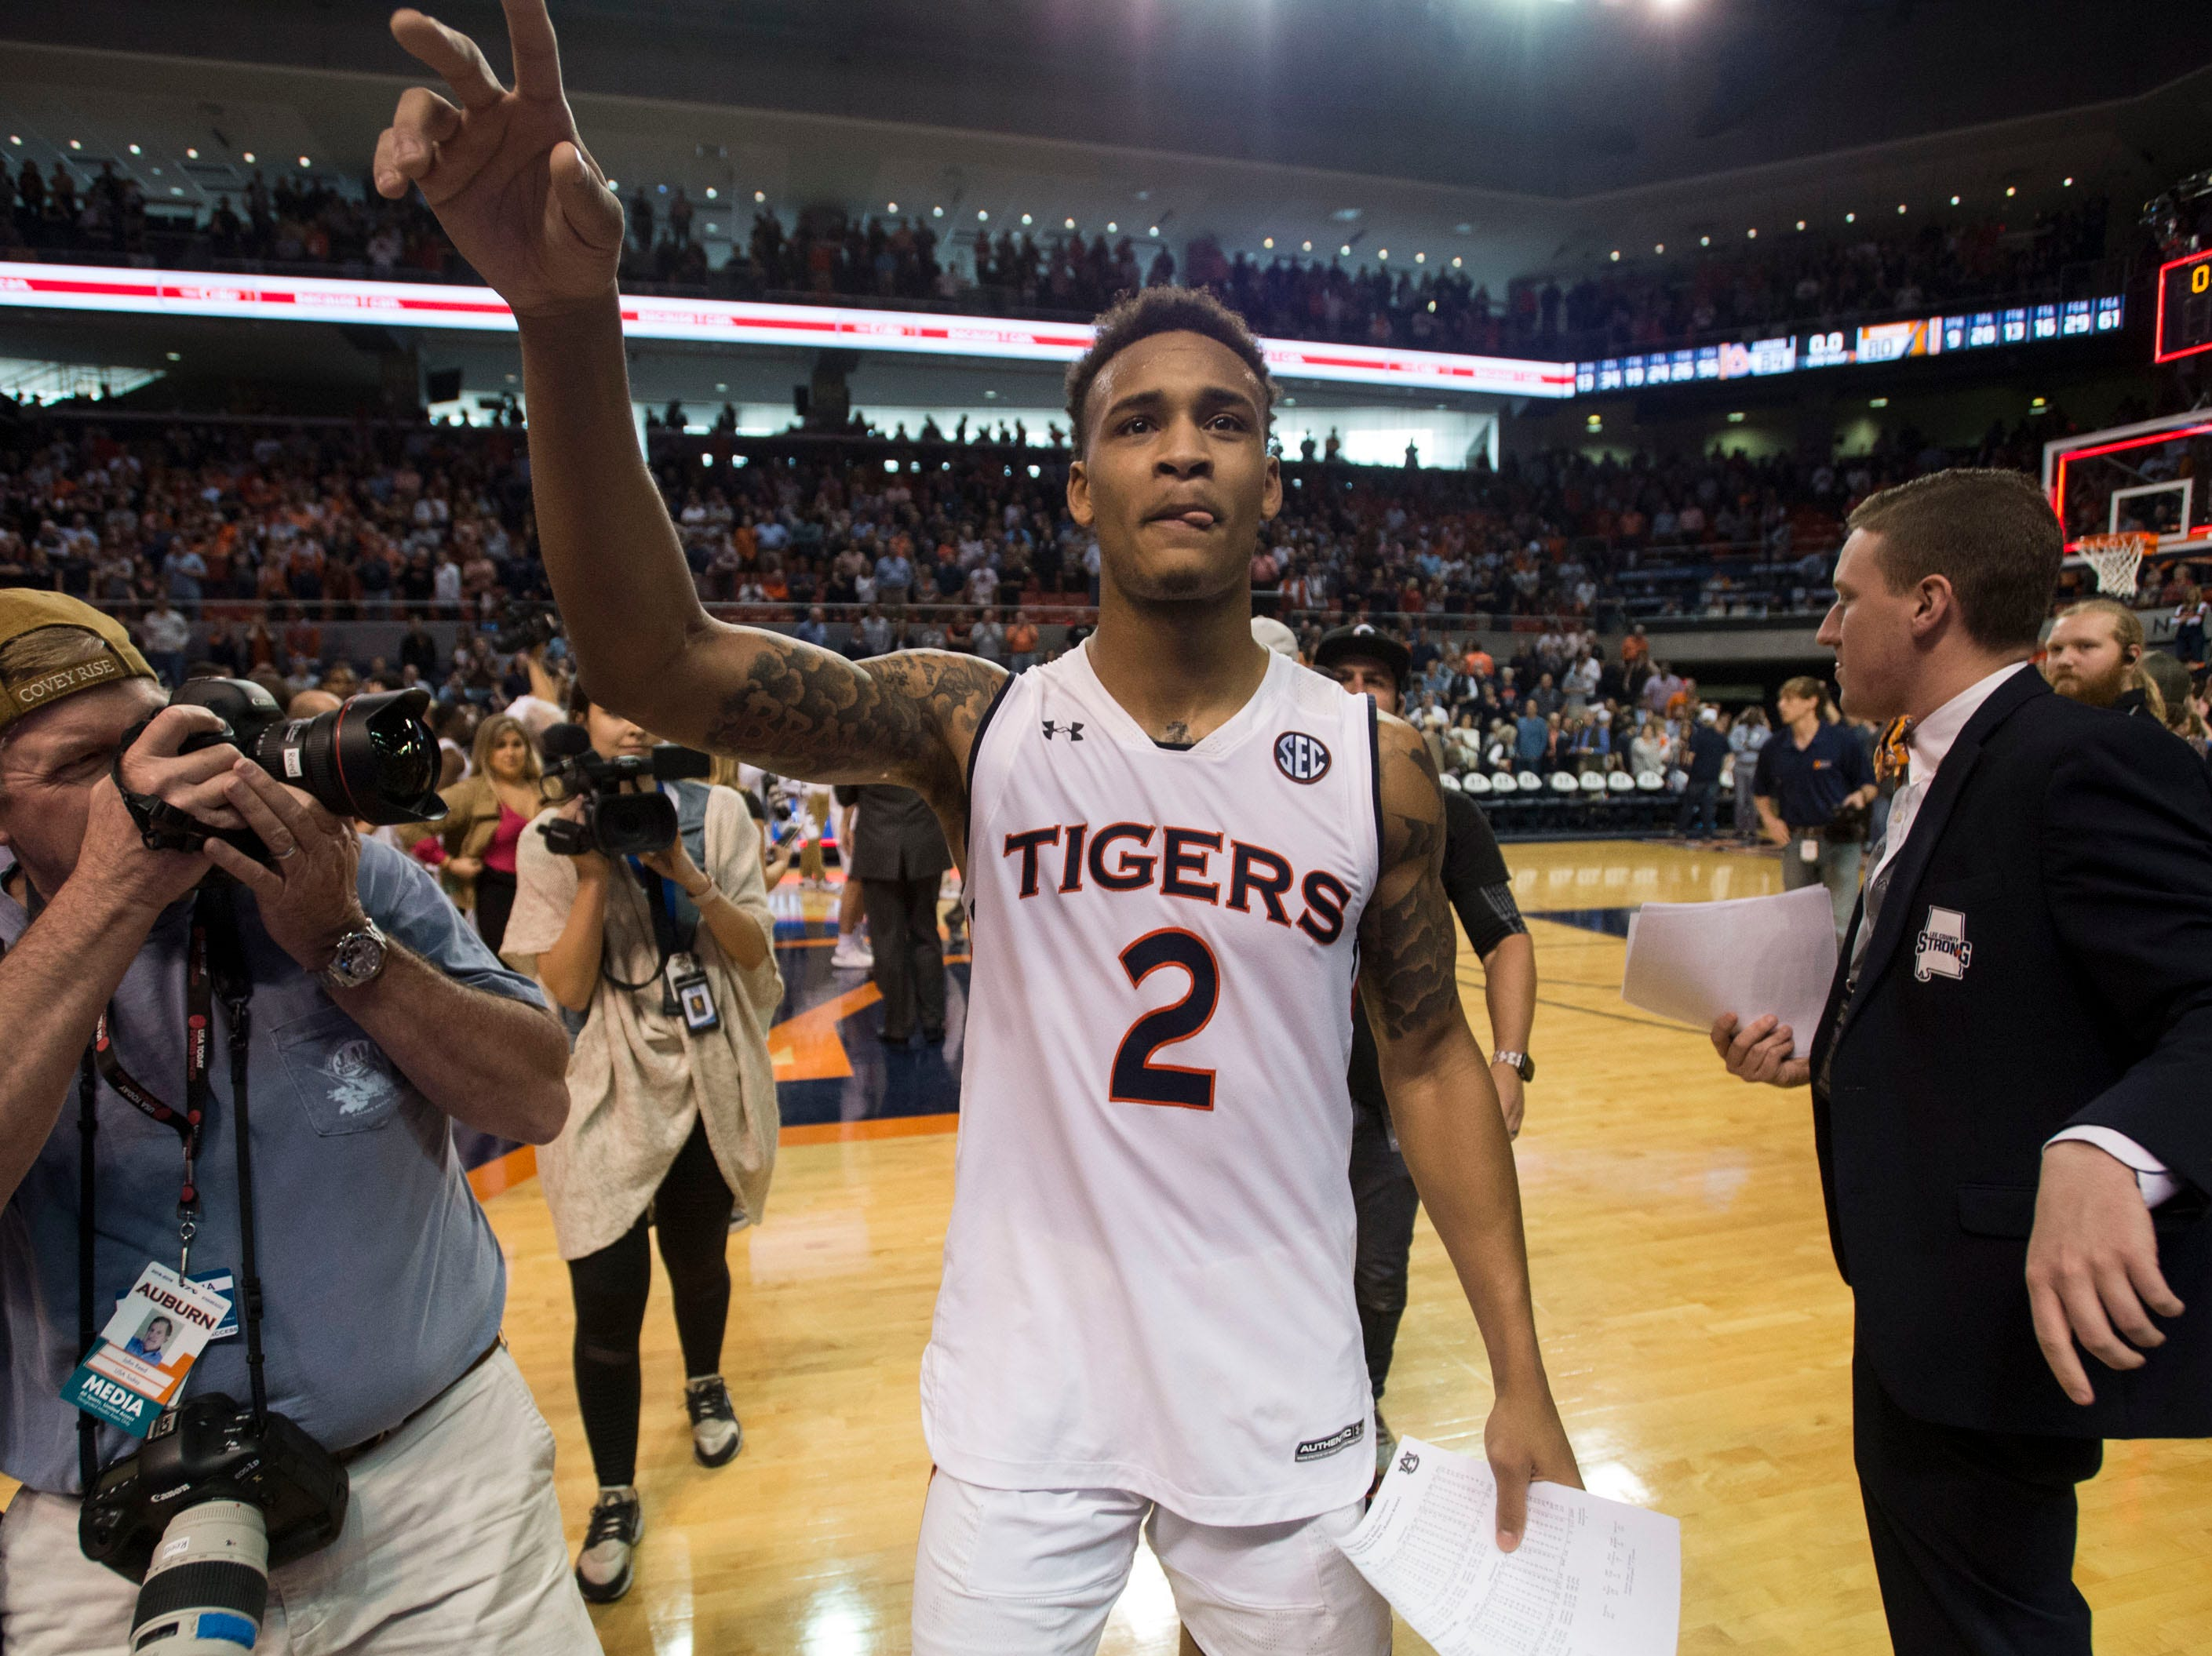 Auburn guard Bryce Brown (2) acknowledges the crowd after the game at Auburn Arena in Auburn, Ala., on Saturday, March 9, 2019. Auburn defeated Tennessee 84-80.